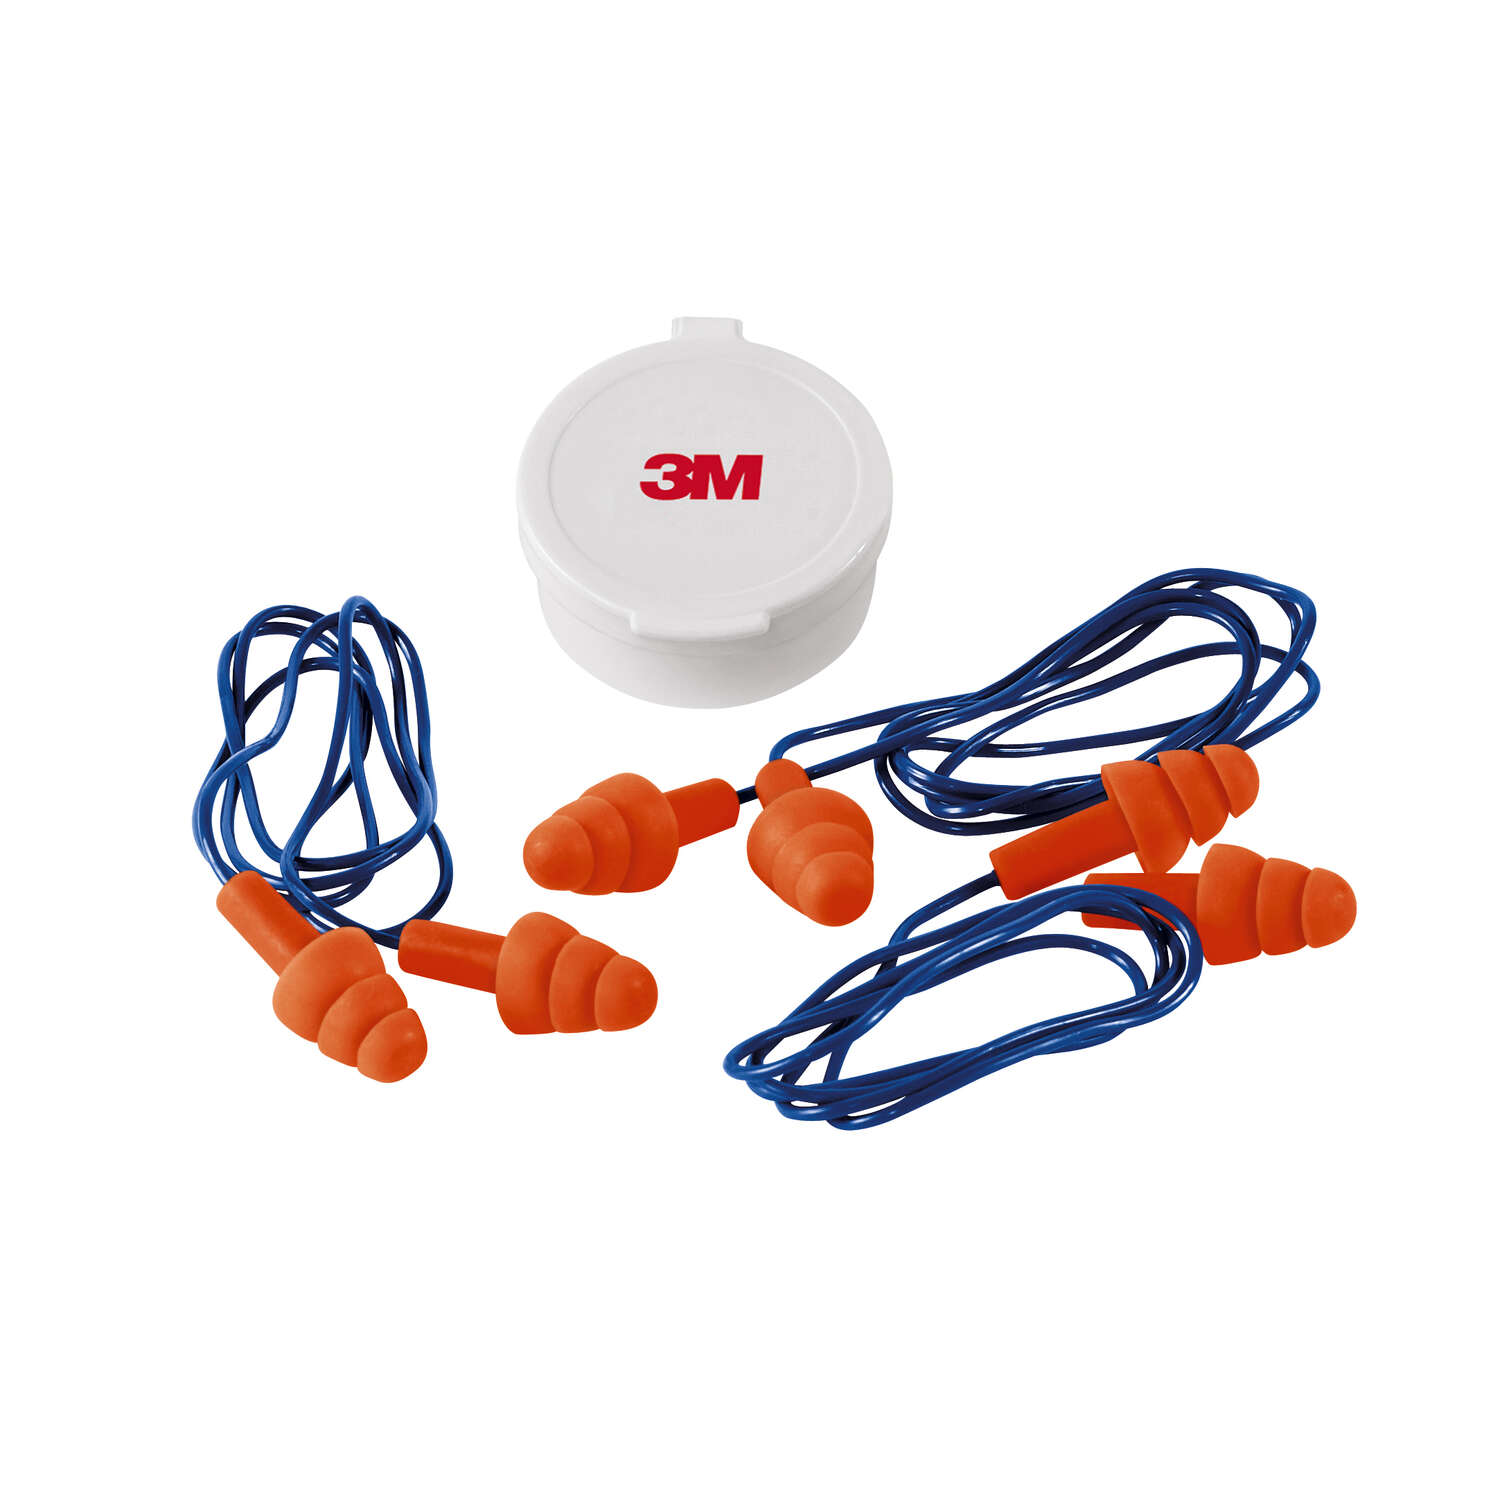 3M  25 dB Reusable  Polyurethane Foam  Ear Plugs  Orange  3